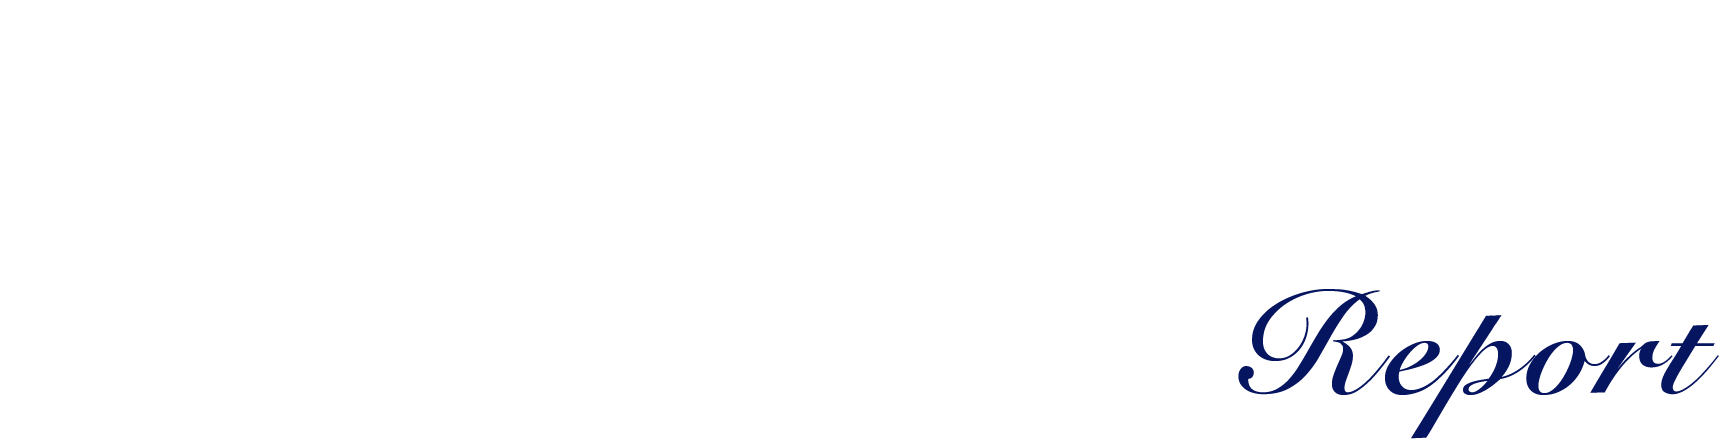 CHAUMET×VERY 読者特別ご招待 SPECIAL EVENT Report